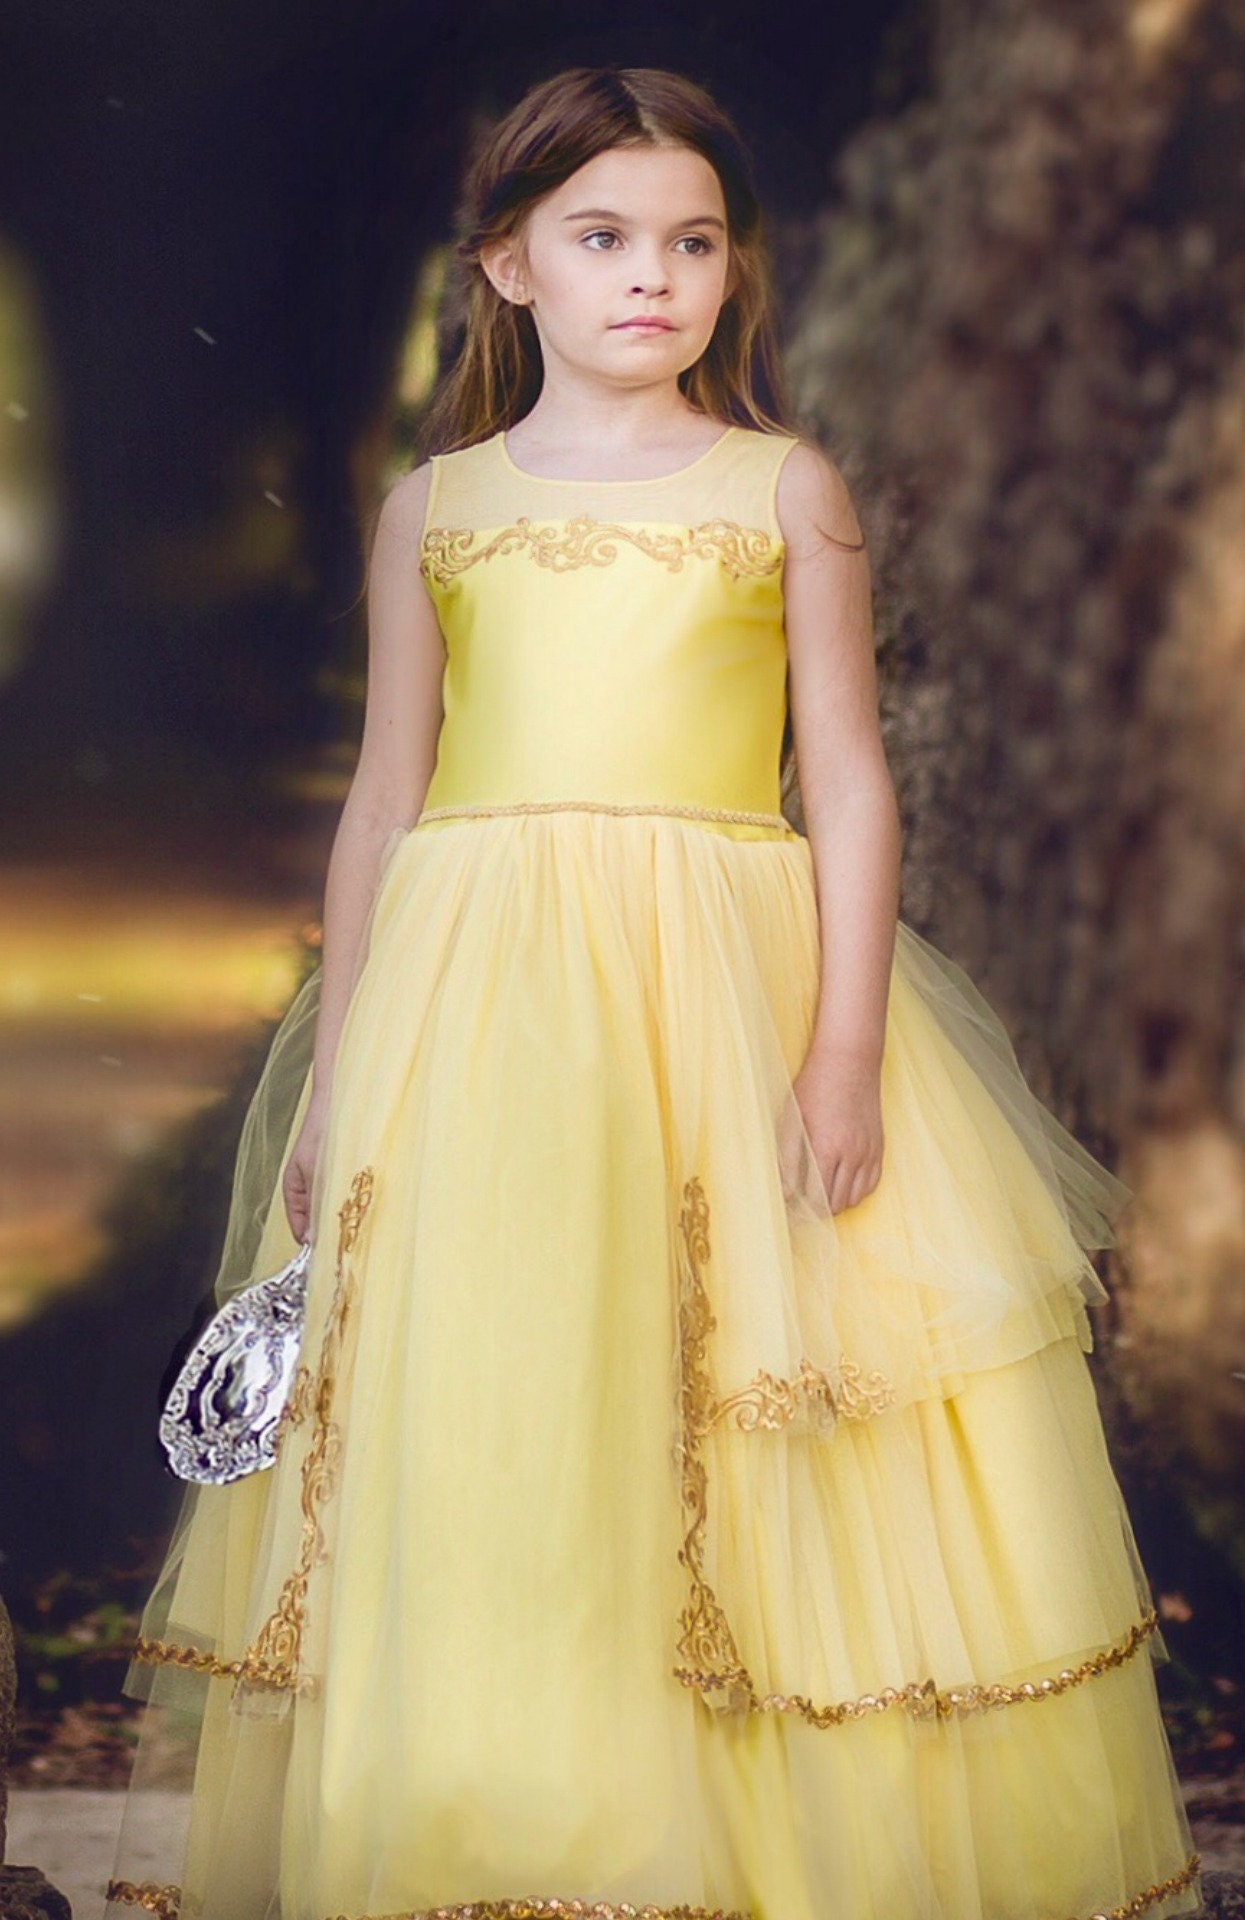 Girls Belle Princess Dress Beauty And The Beast Yellow Birthday